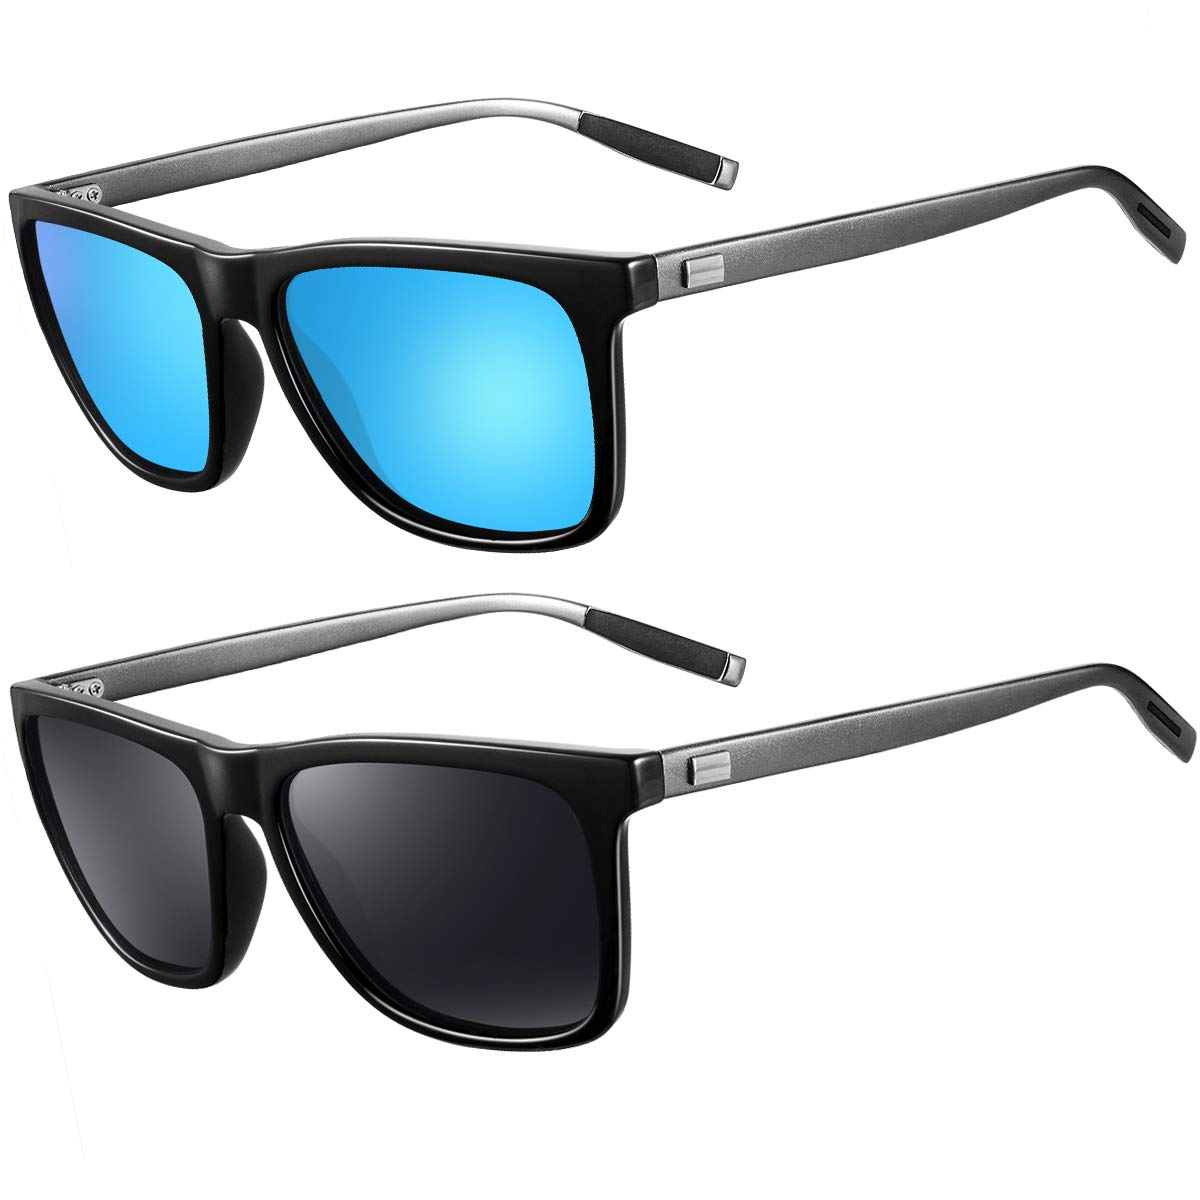 Sunglasses for Men Polarized Sunglasses - FEIDU Polarized Sunglasses UV400 Protective FD9003 (black-blue) by FEIDU